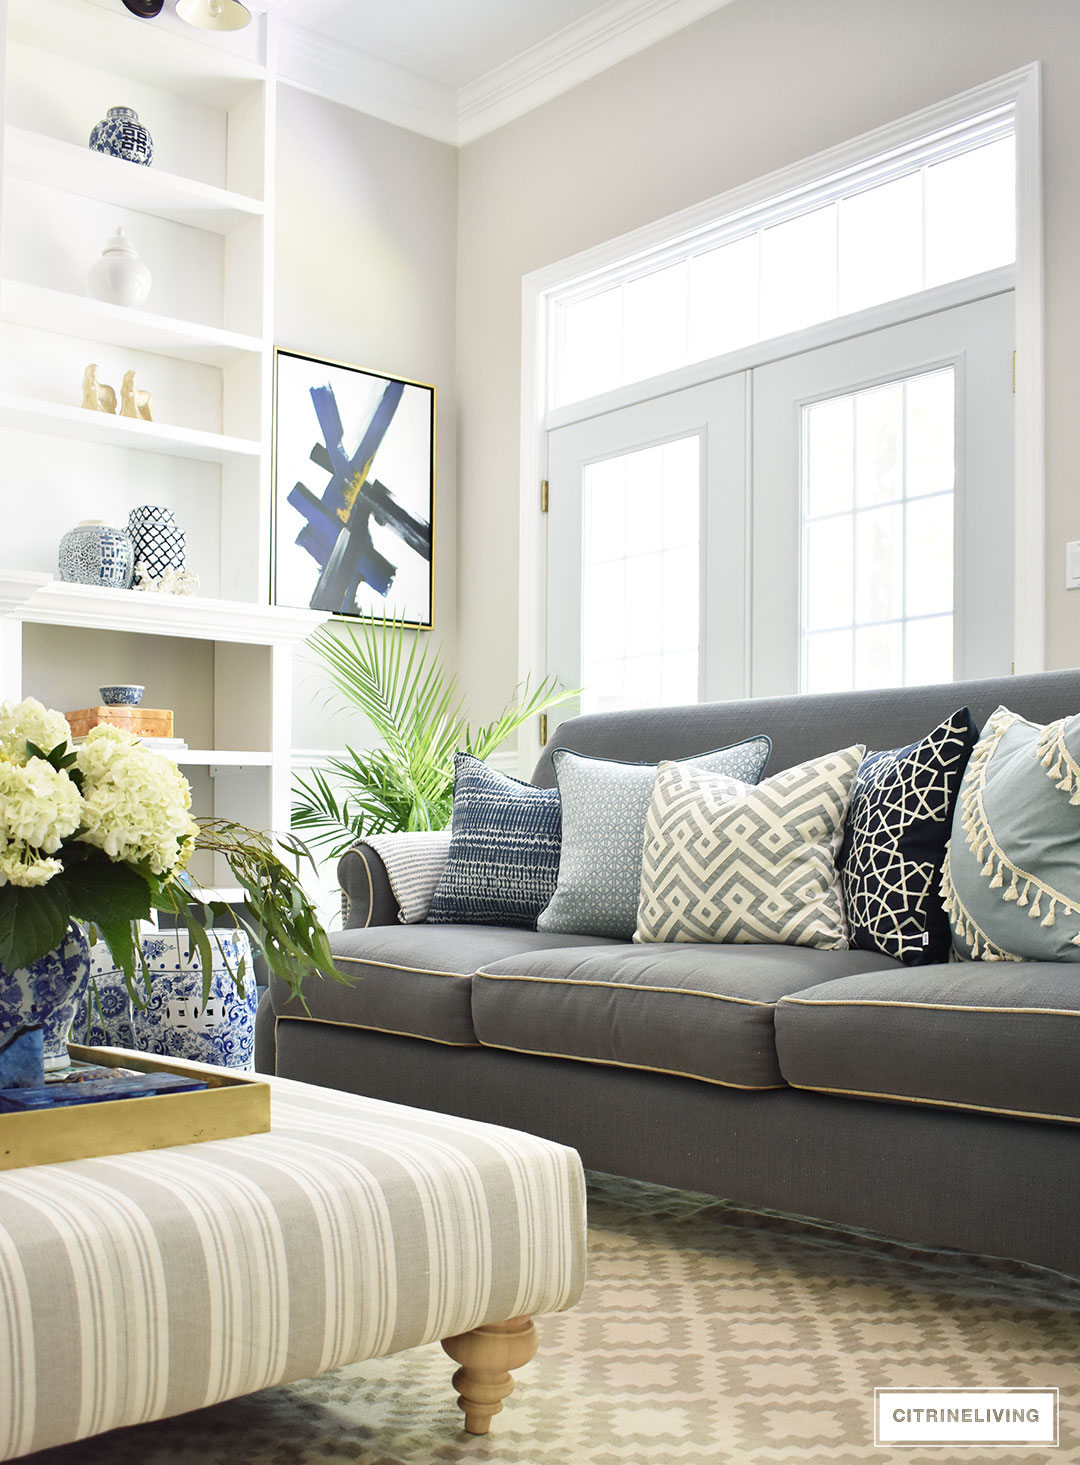 Summer decorated living with layers of beautiful blue patterned pillows accented with fresh palms. Custom built bookshelves hold blue and white pieces mixed wit coastal accessories, brass accents and design books. A striped upholstered ottoman makes a classic statement.